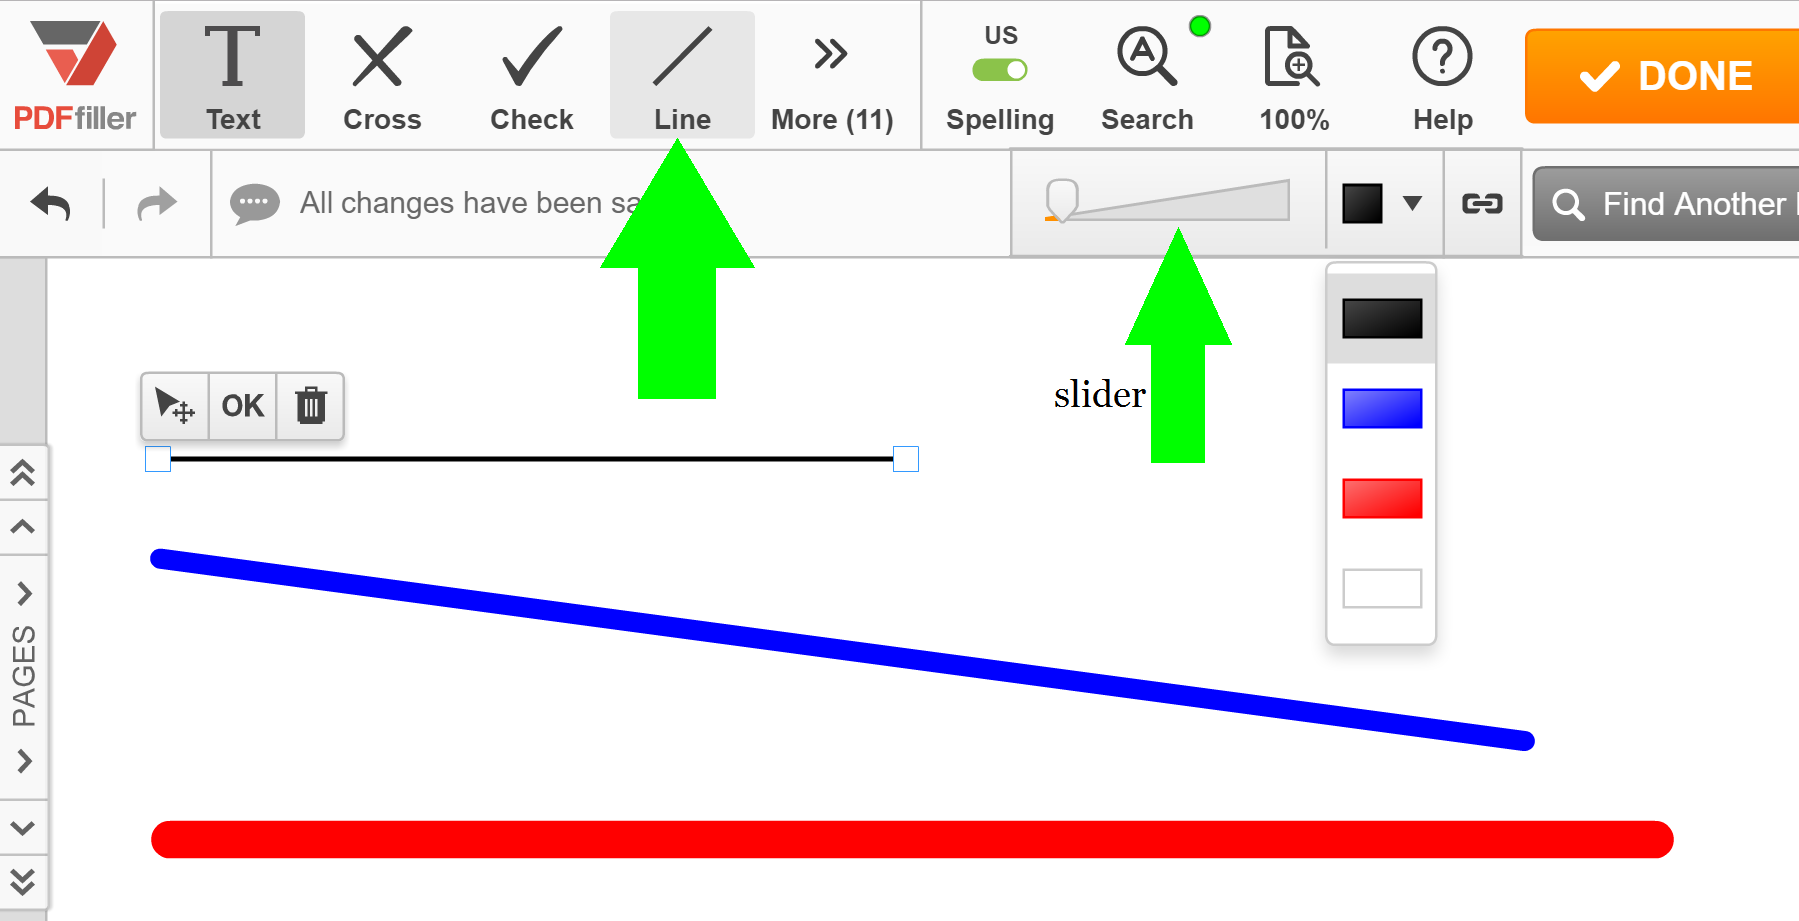 Drawing Lines In Pdf : Draw line in pdf search edit fill sign fax save